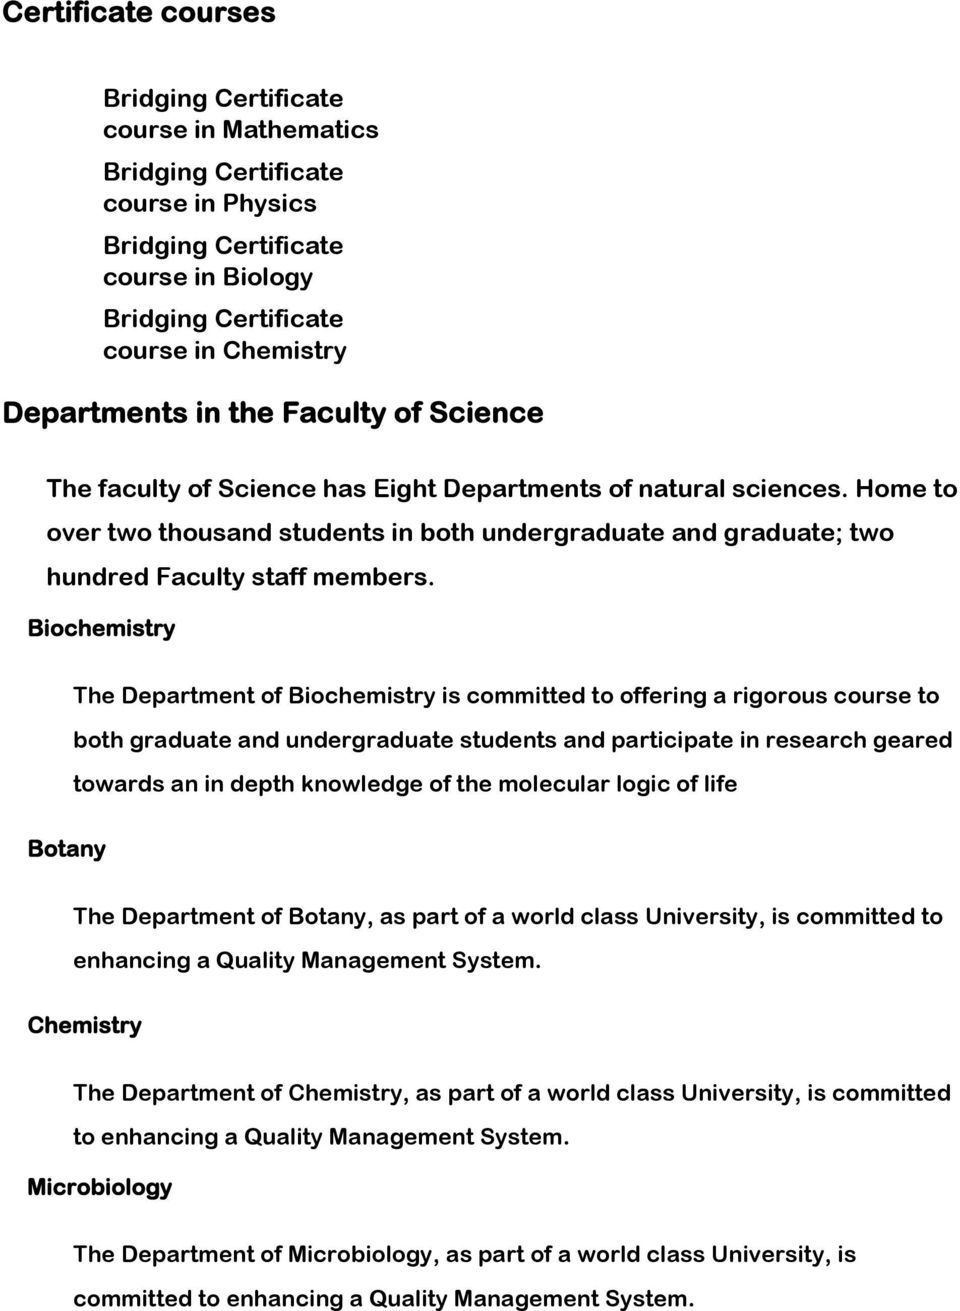 The Faculty of Science in Kenya constitutes of eight